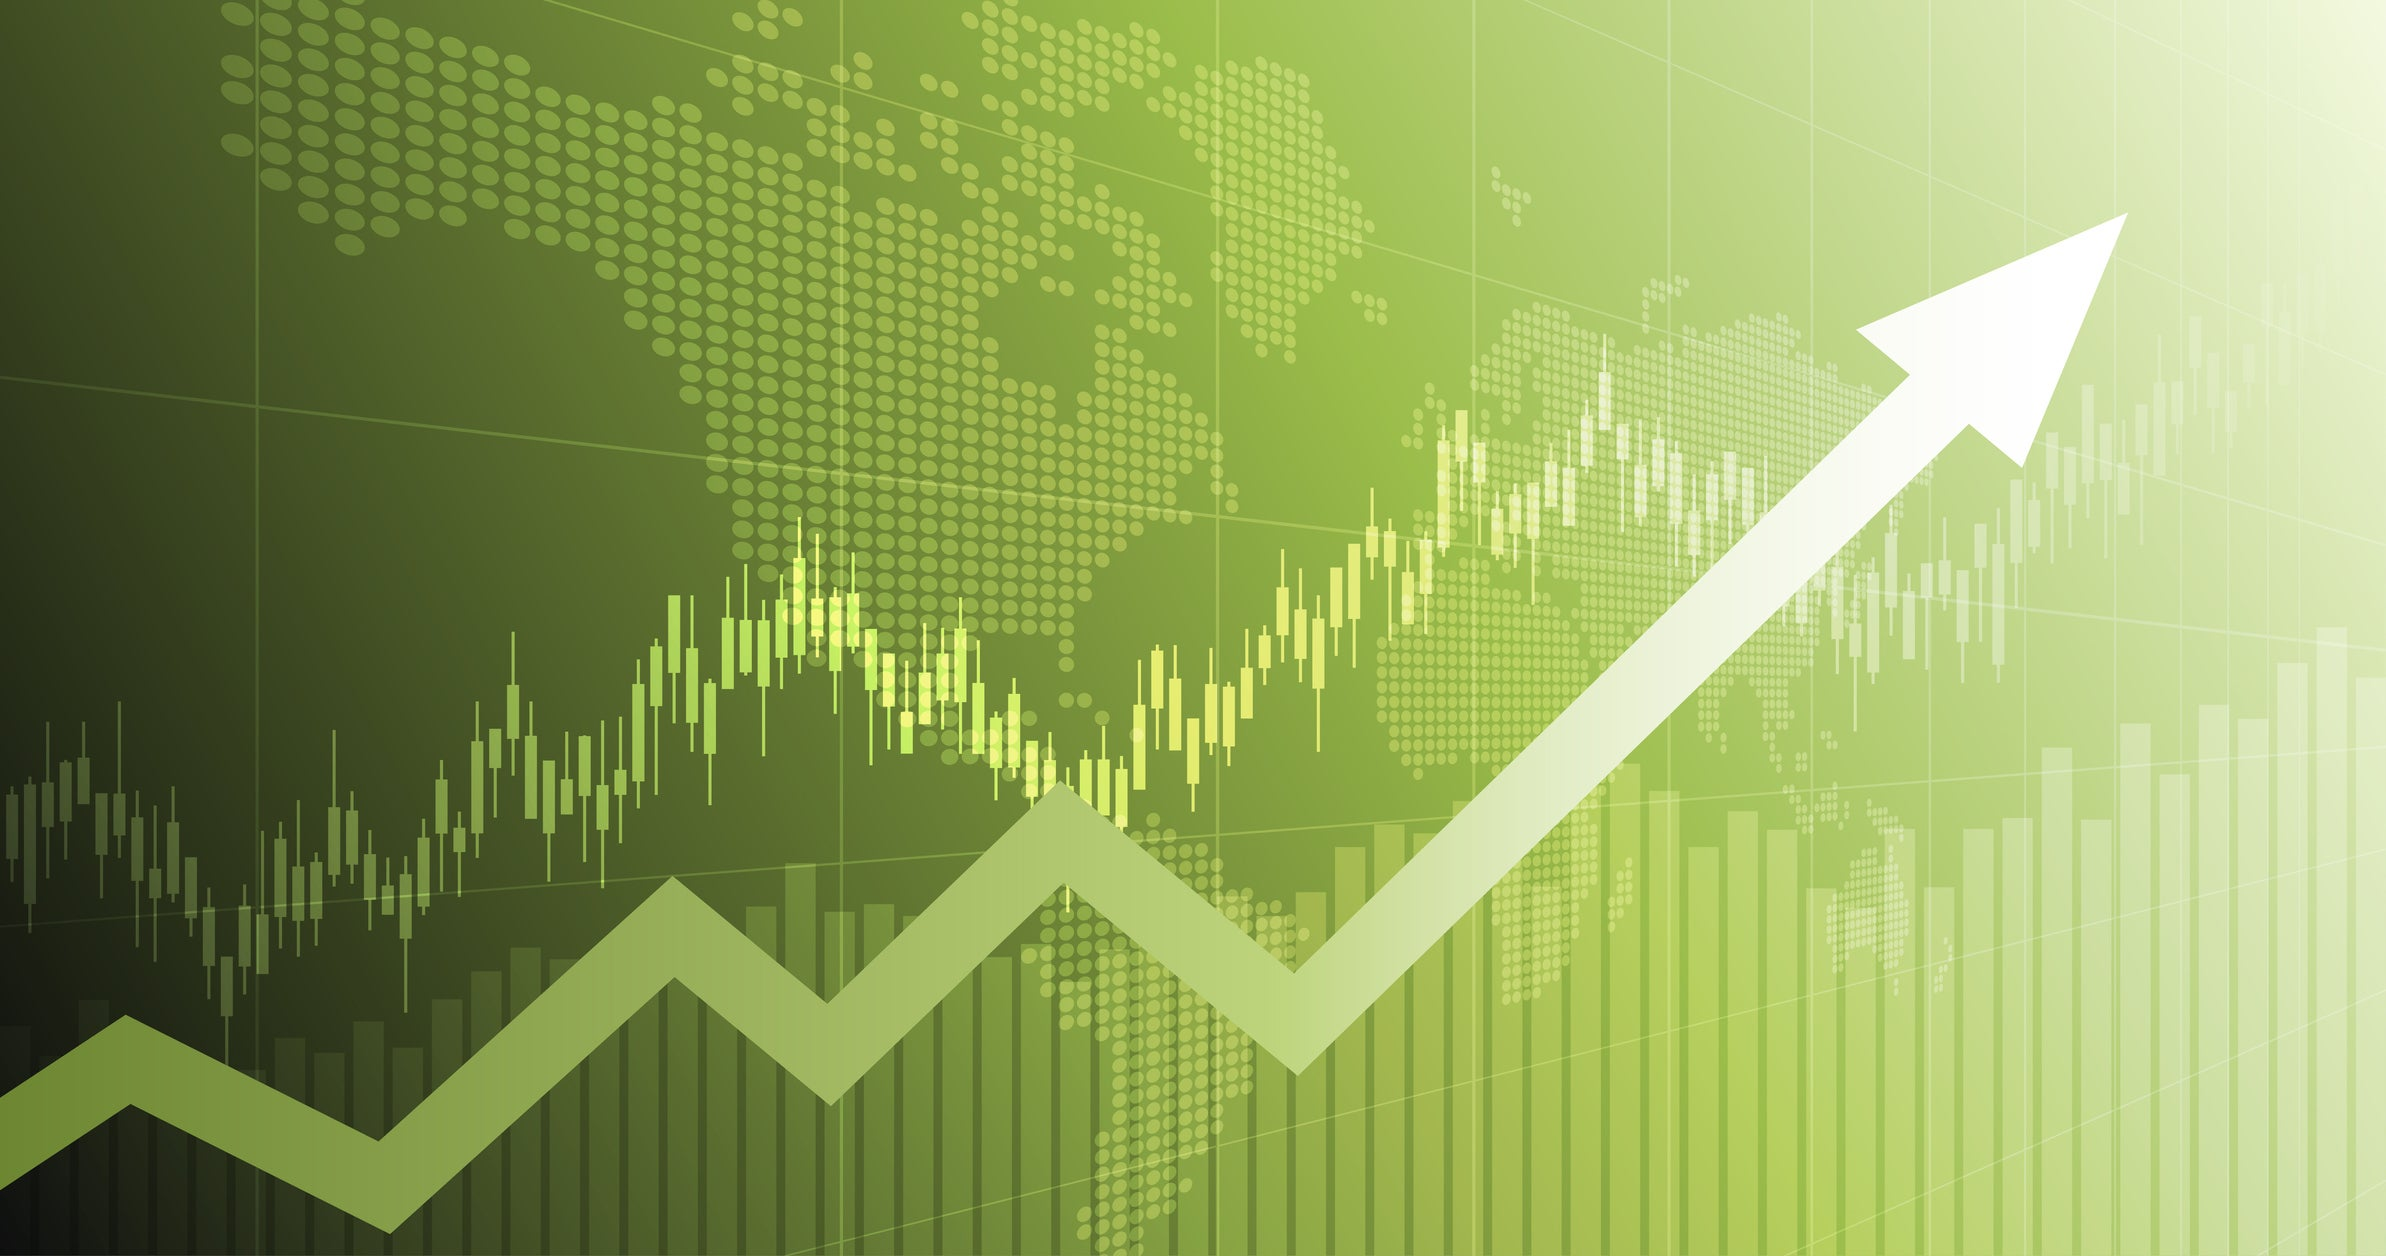 Why Thryv Stock Jumped on Thursday